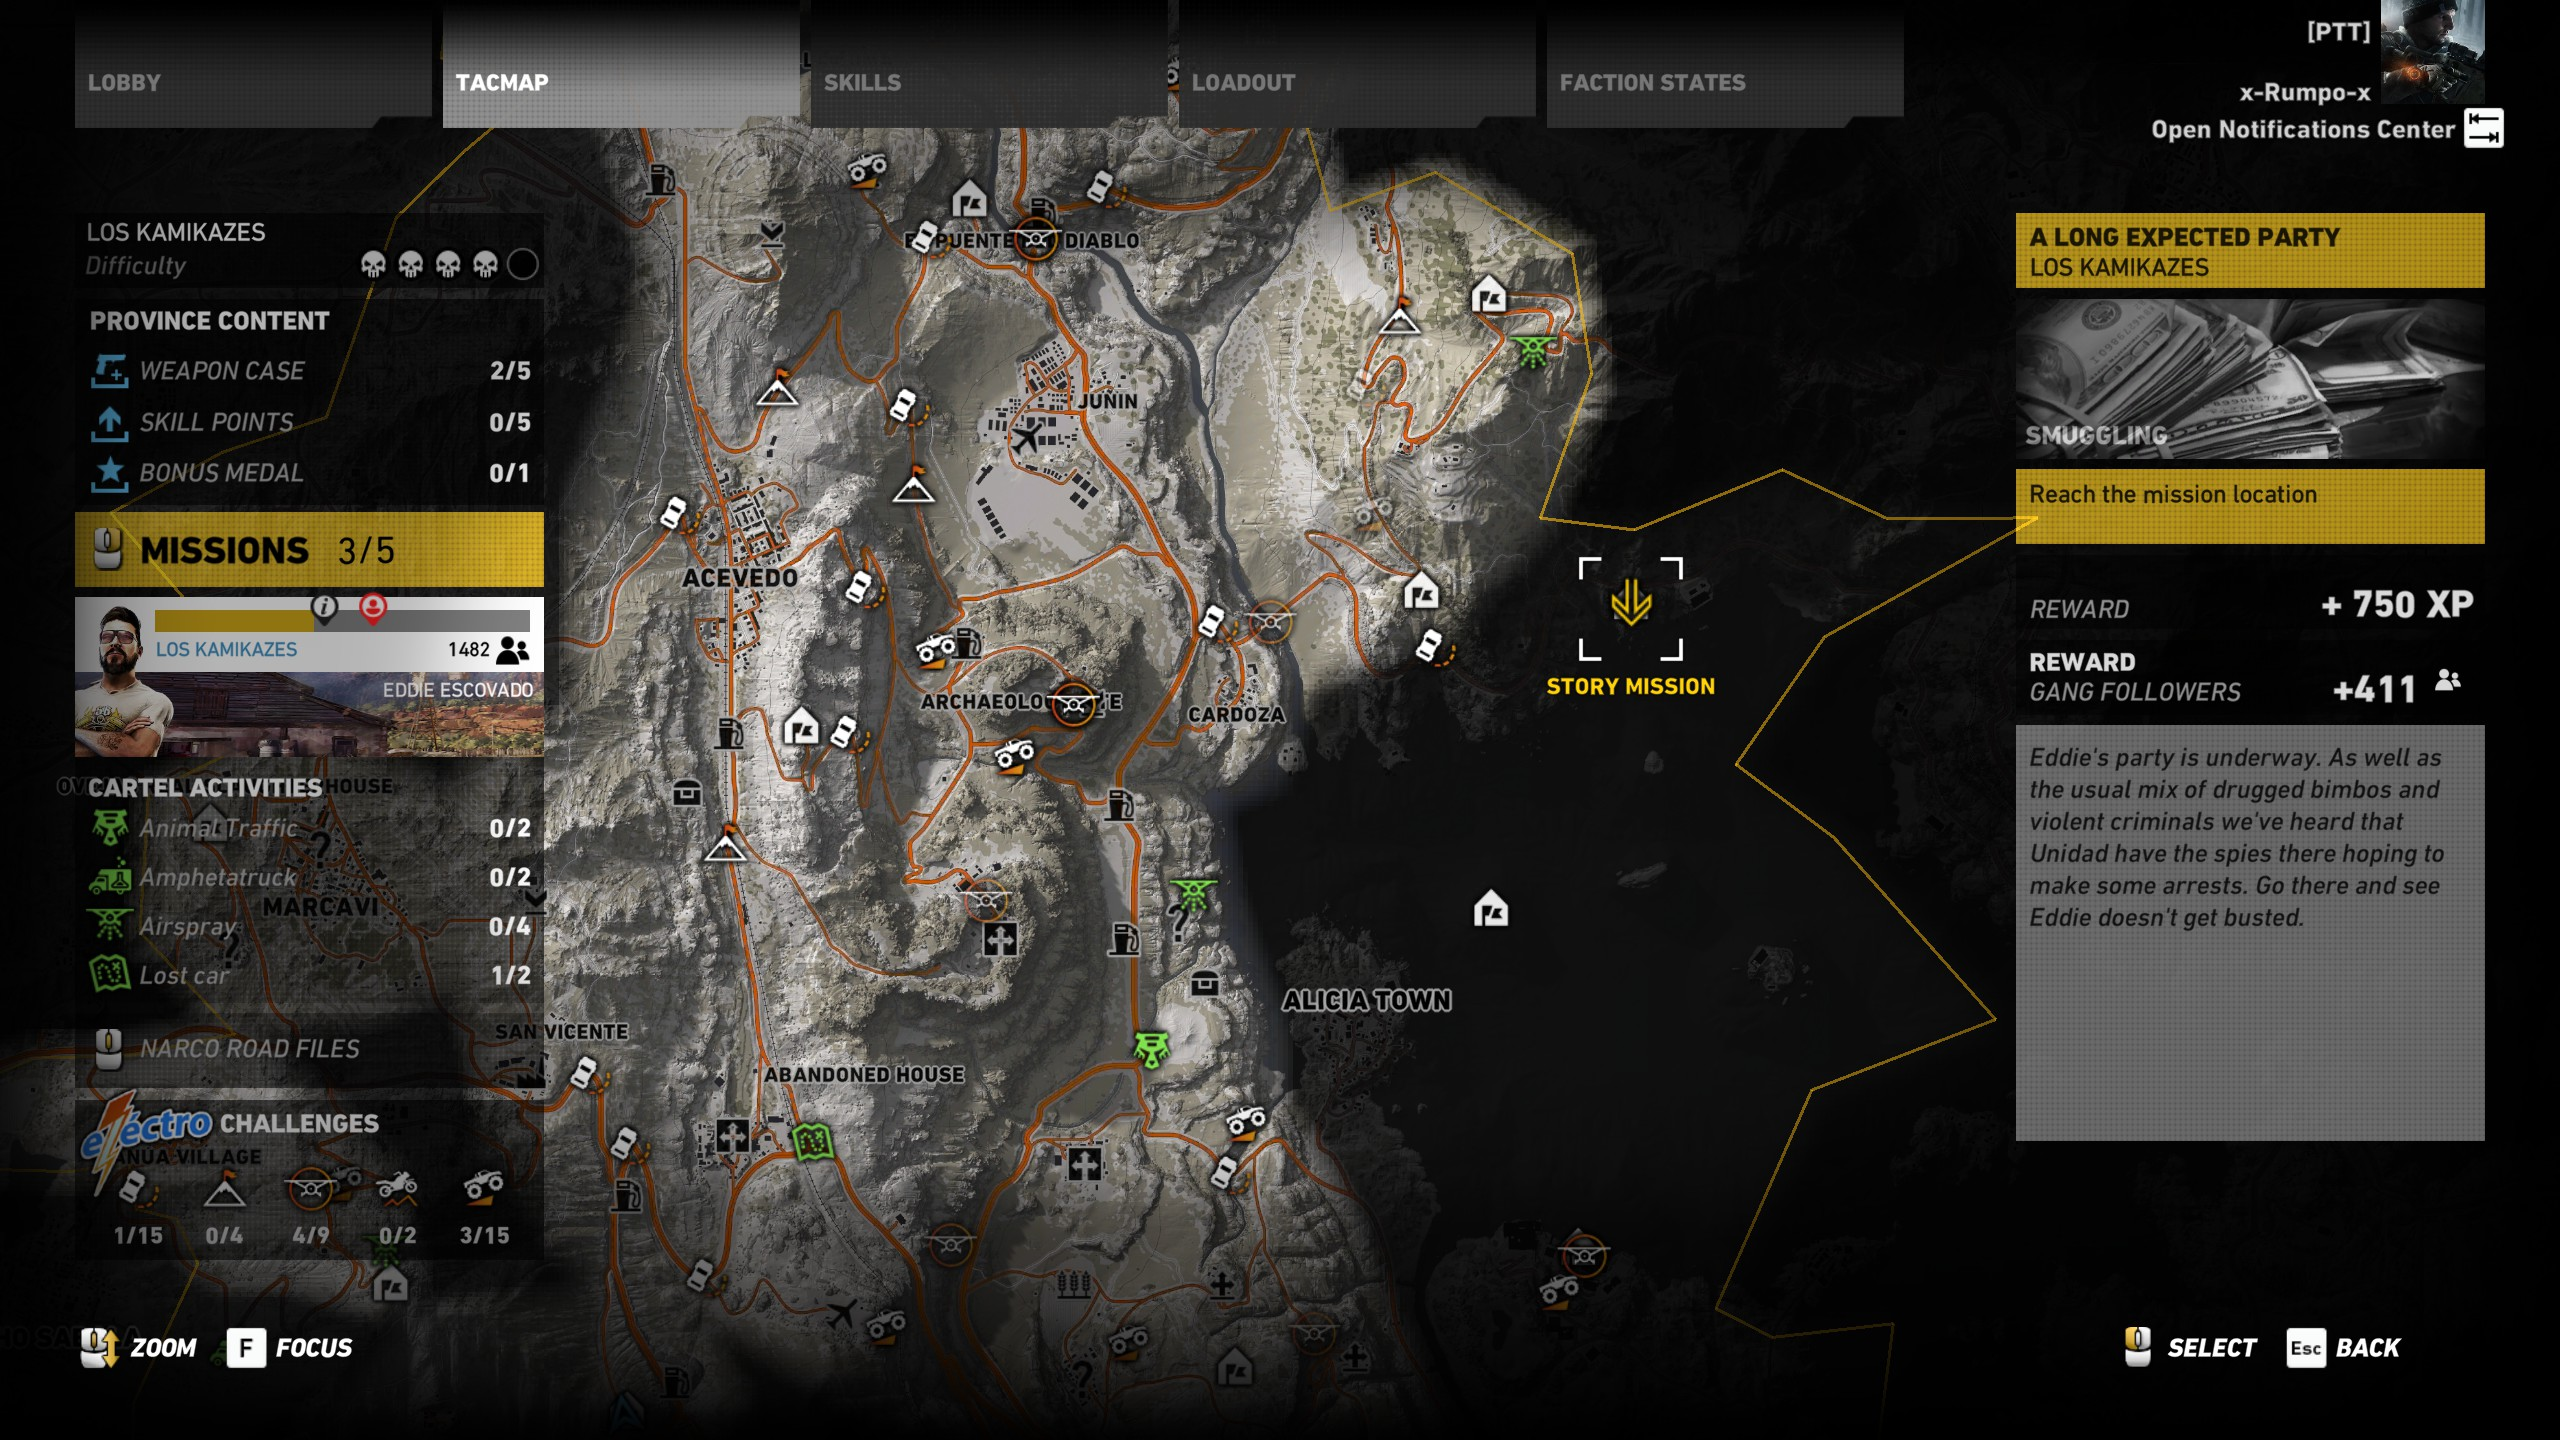 You can track your progress with various activities by opening your map.